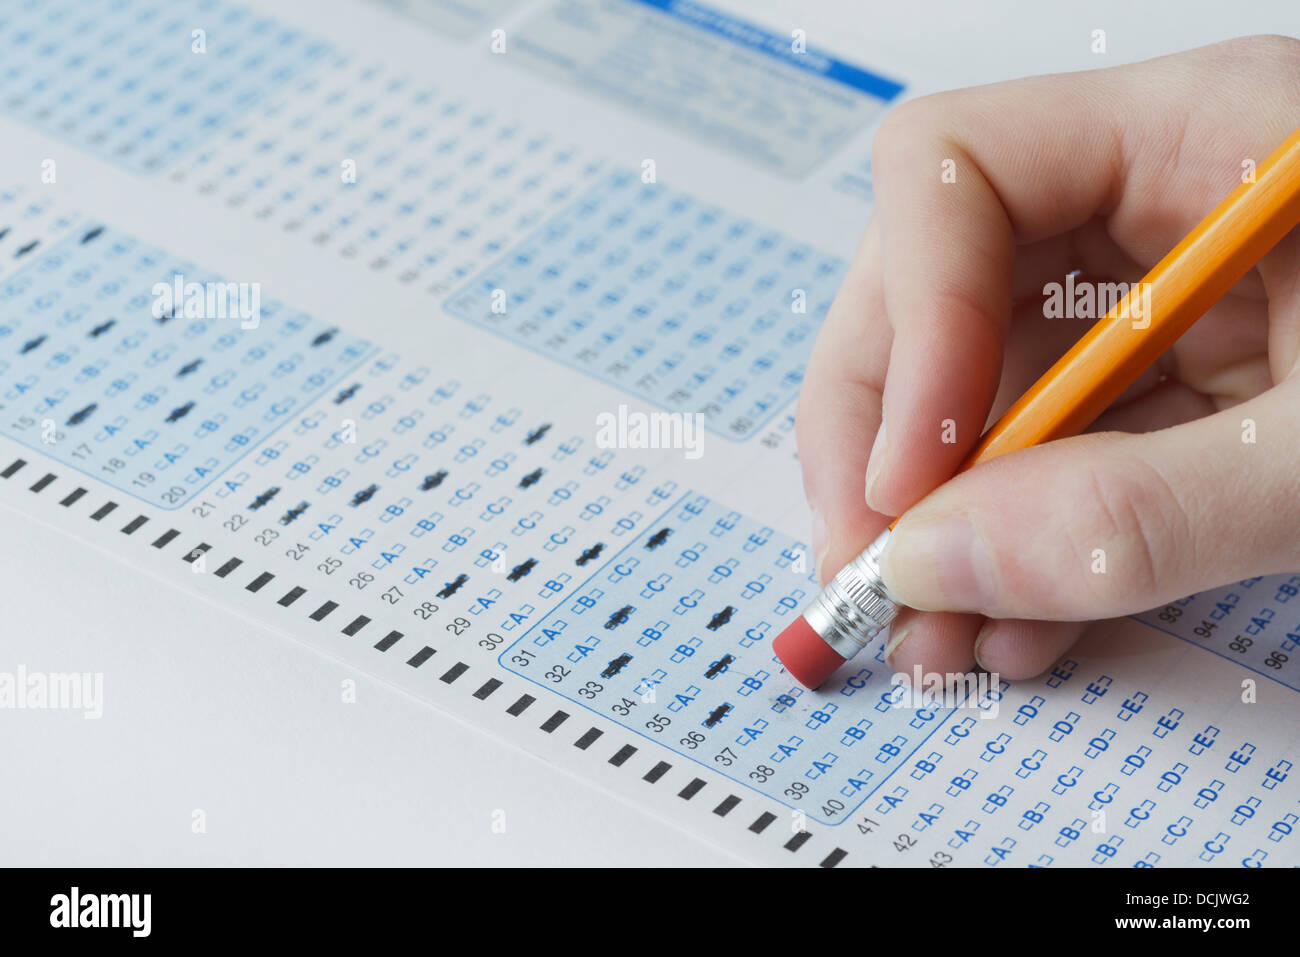 Optical scan answer sheet for a school exam with student erasing answer - Stock Image